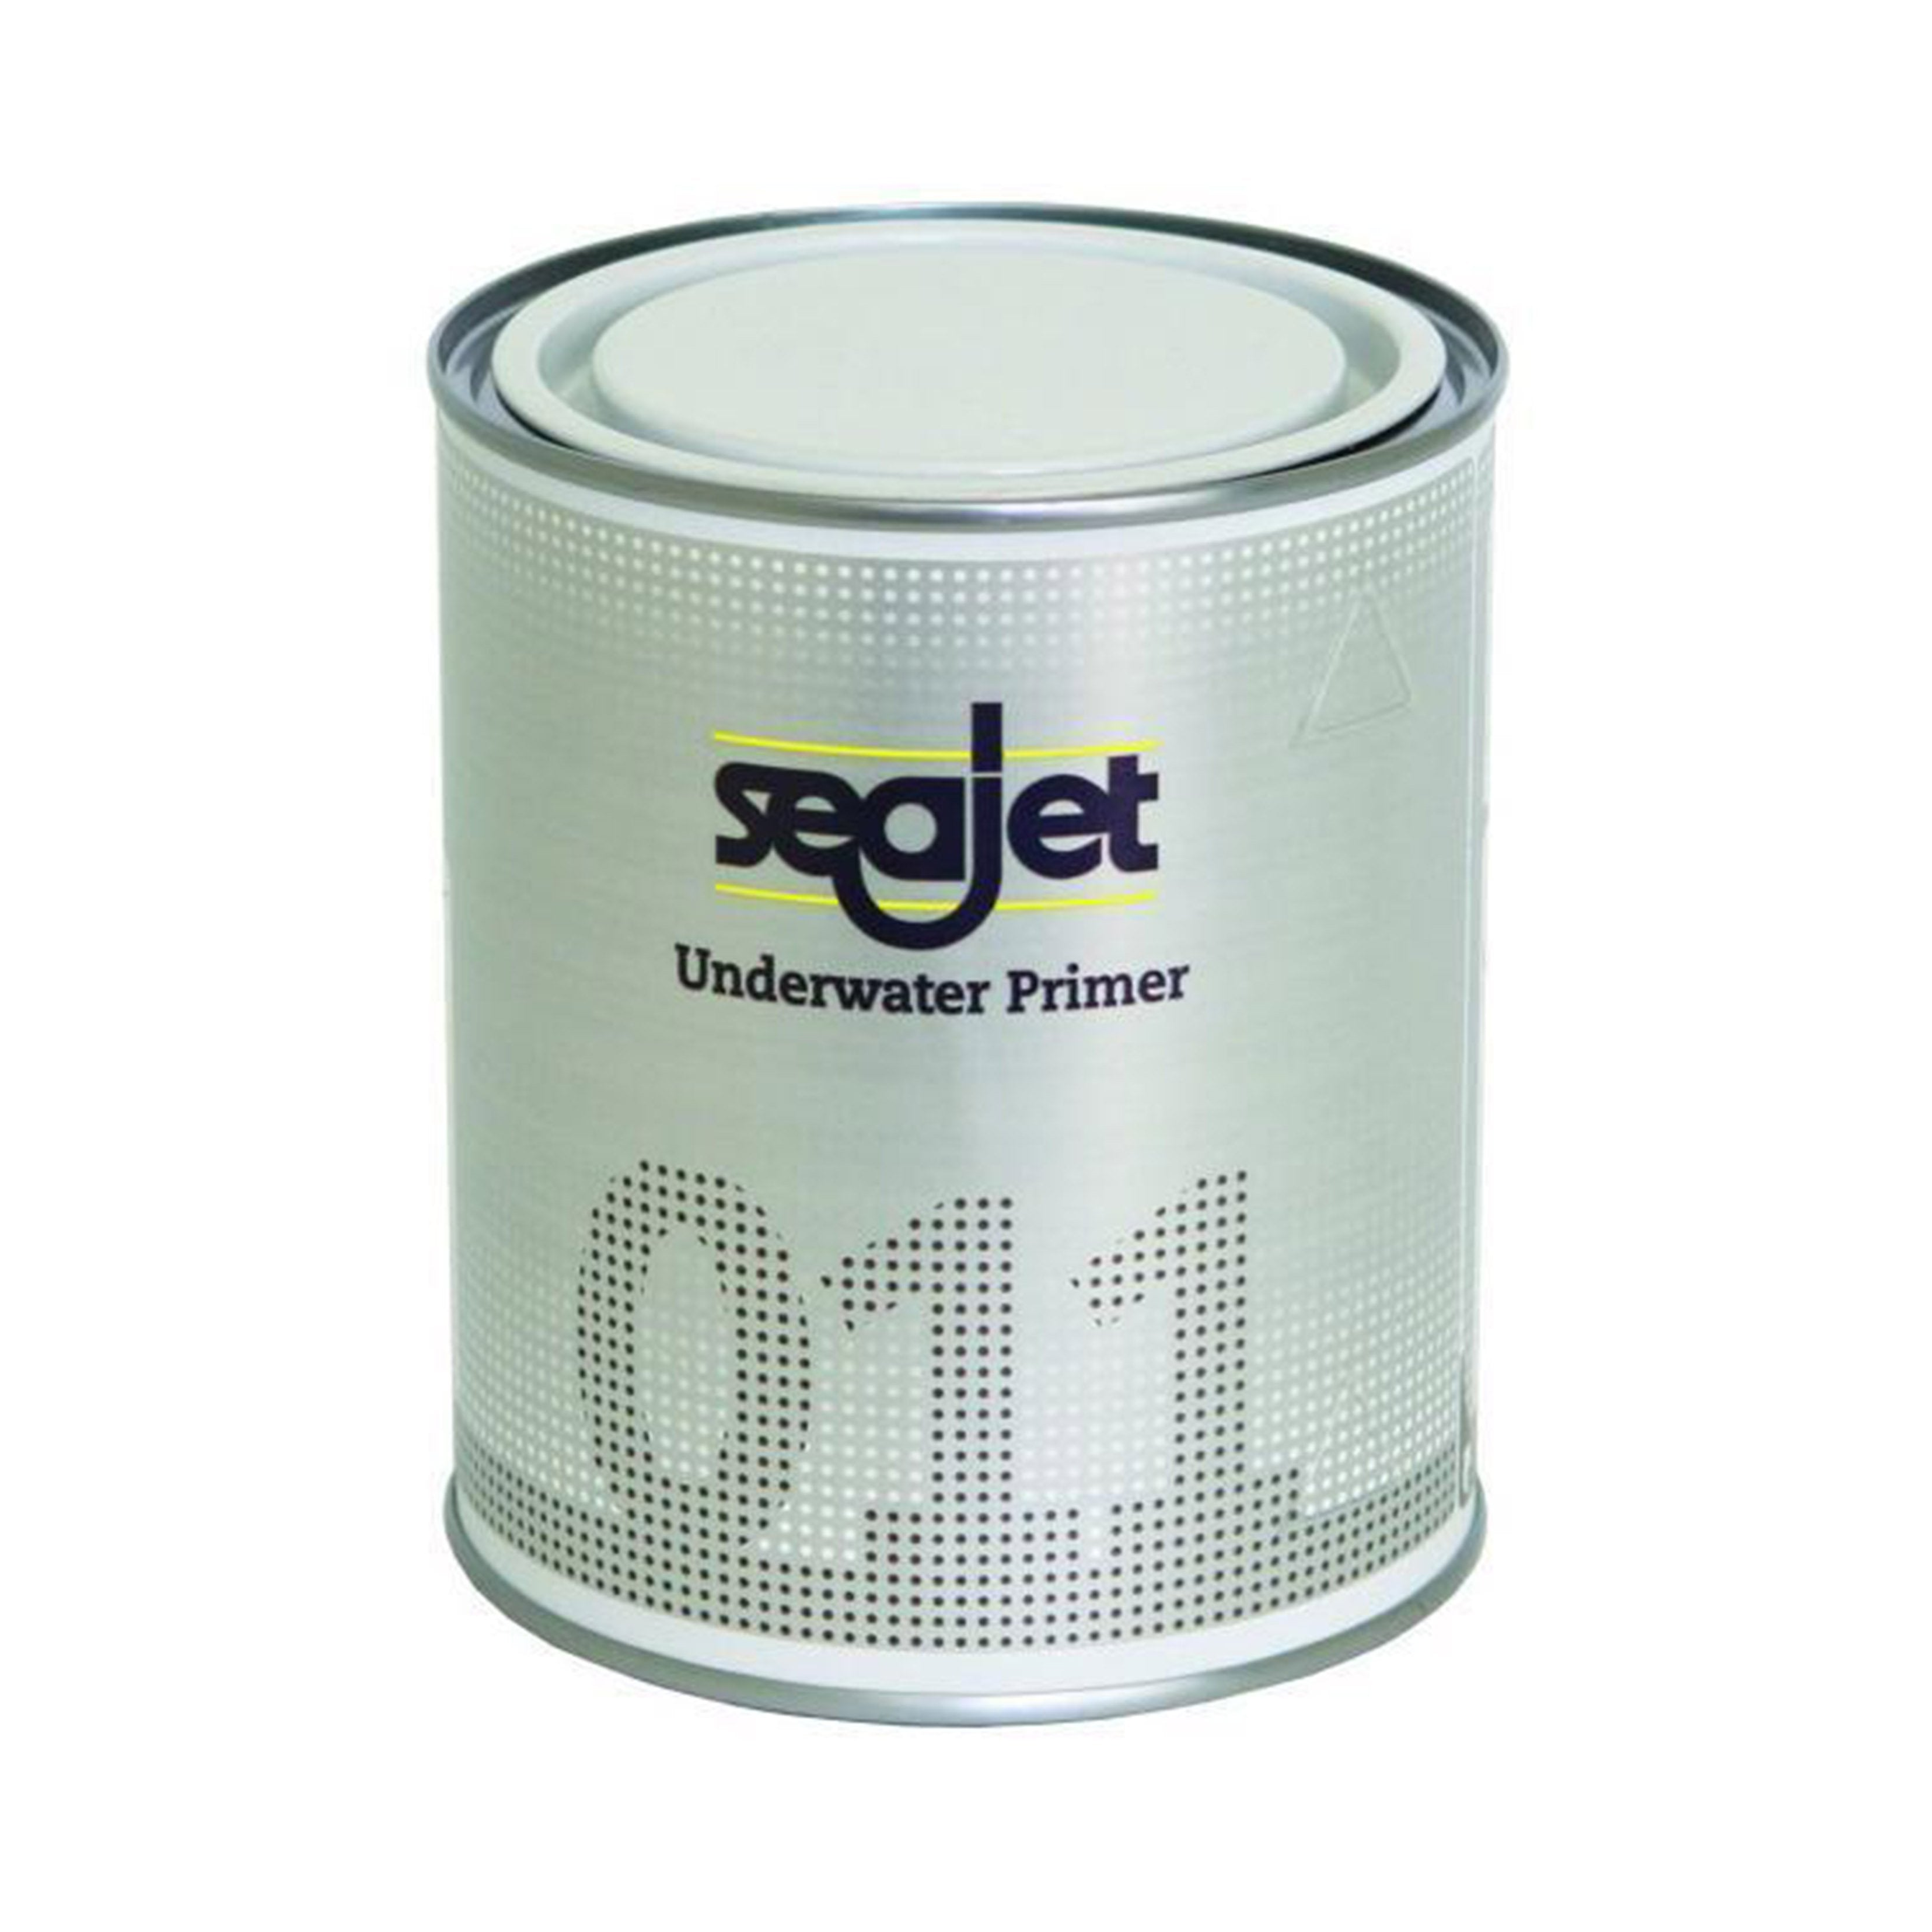 seajet-011-underwater-primer-for-wood-surfaces